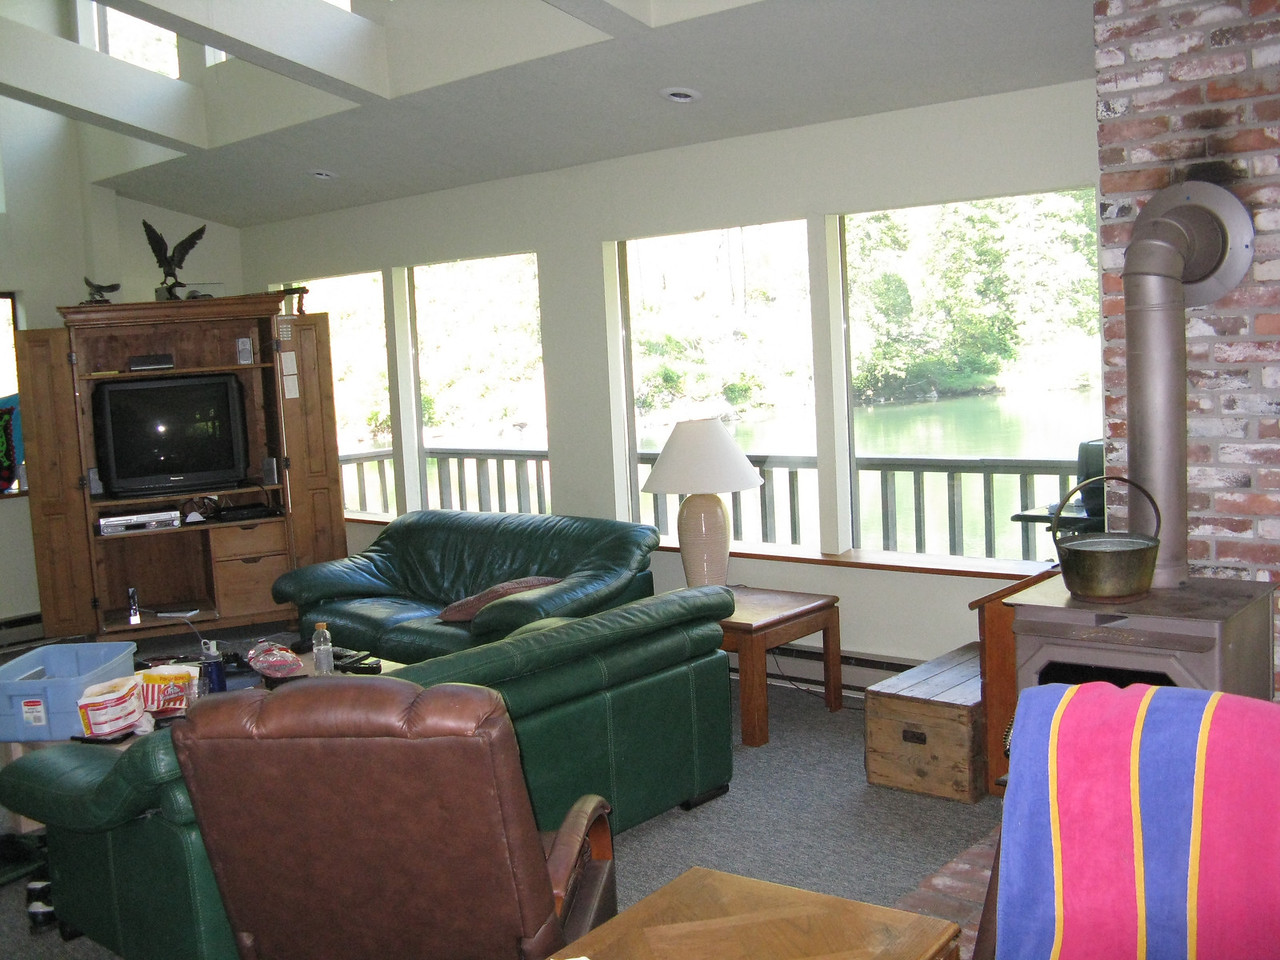 The living room area looks out on the Wenatchee River.